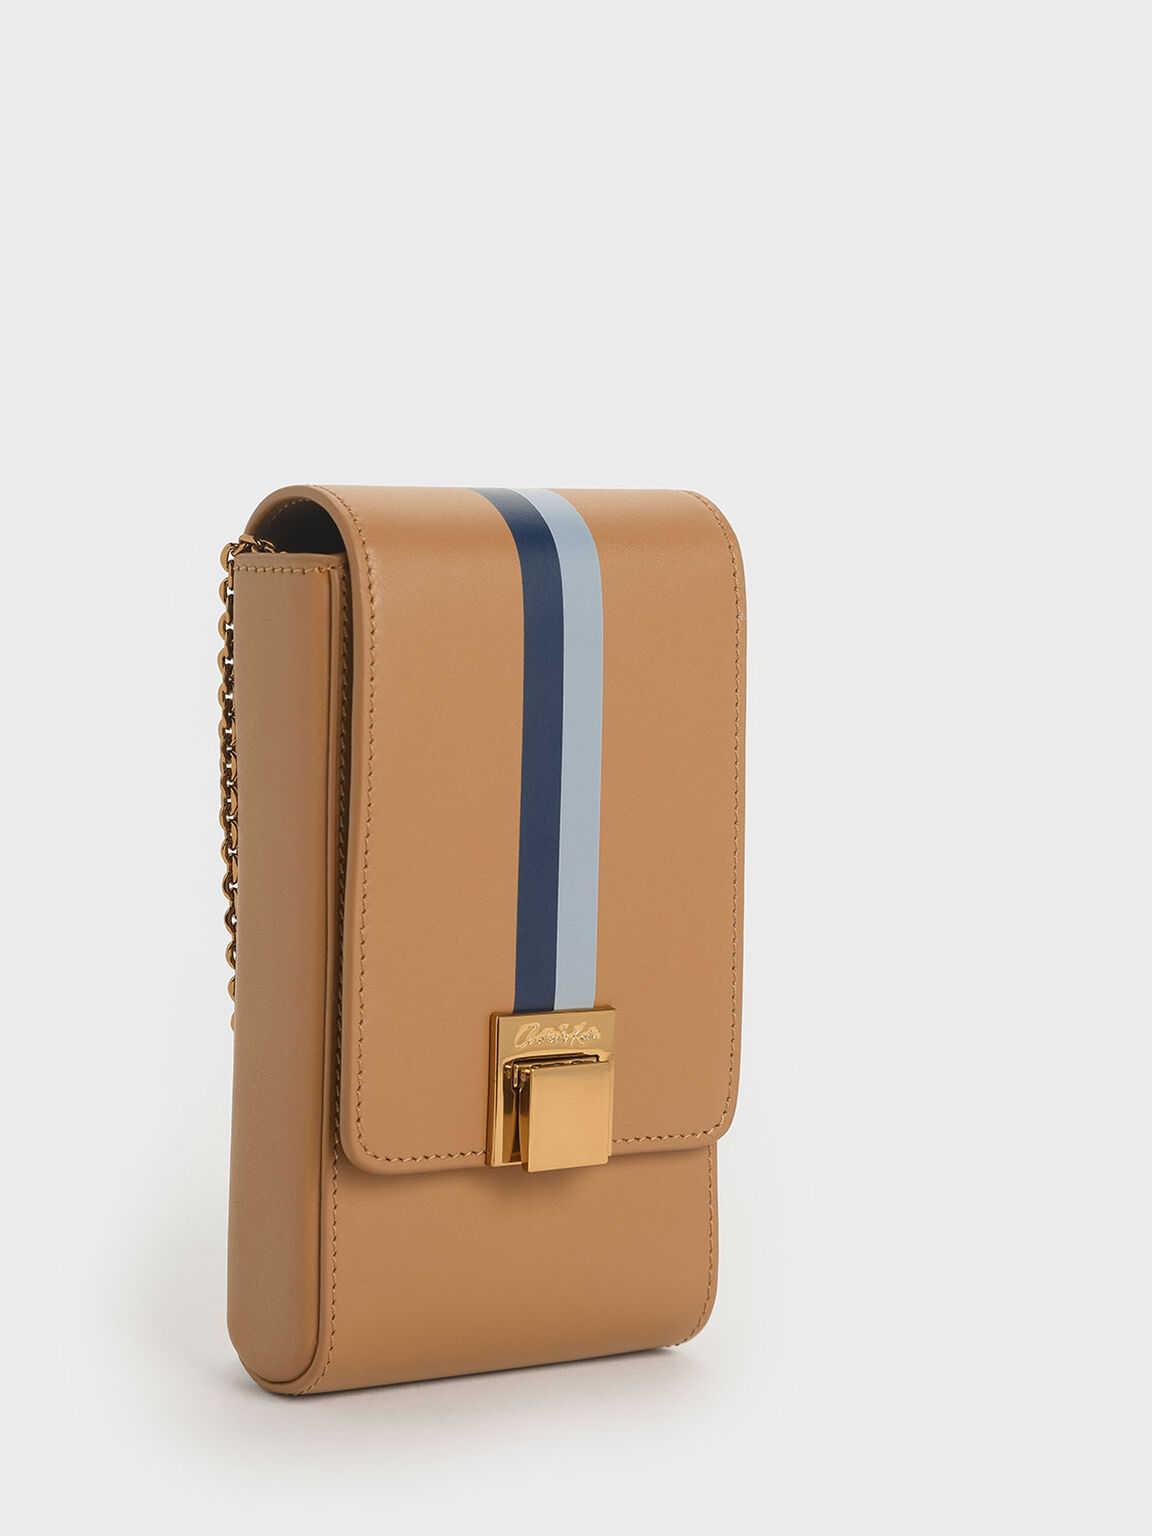 Striped Elongated Leather Crossbody Bag, Caramel, hi-res